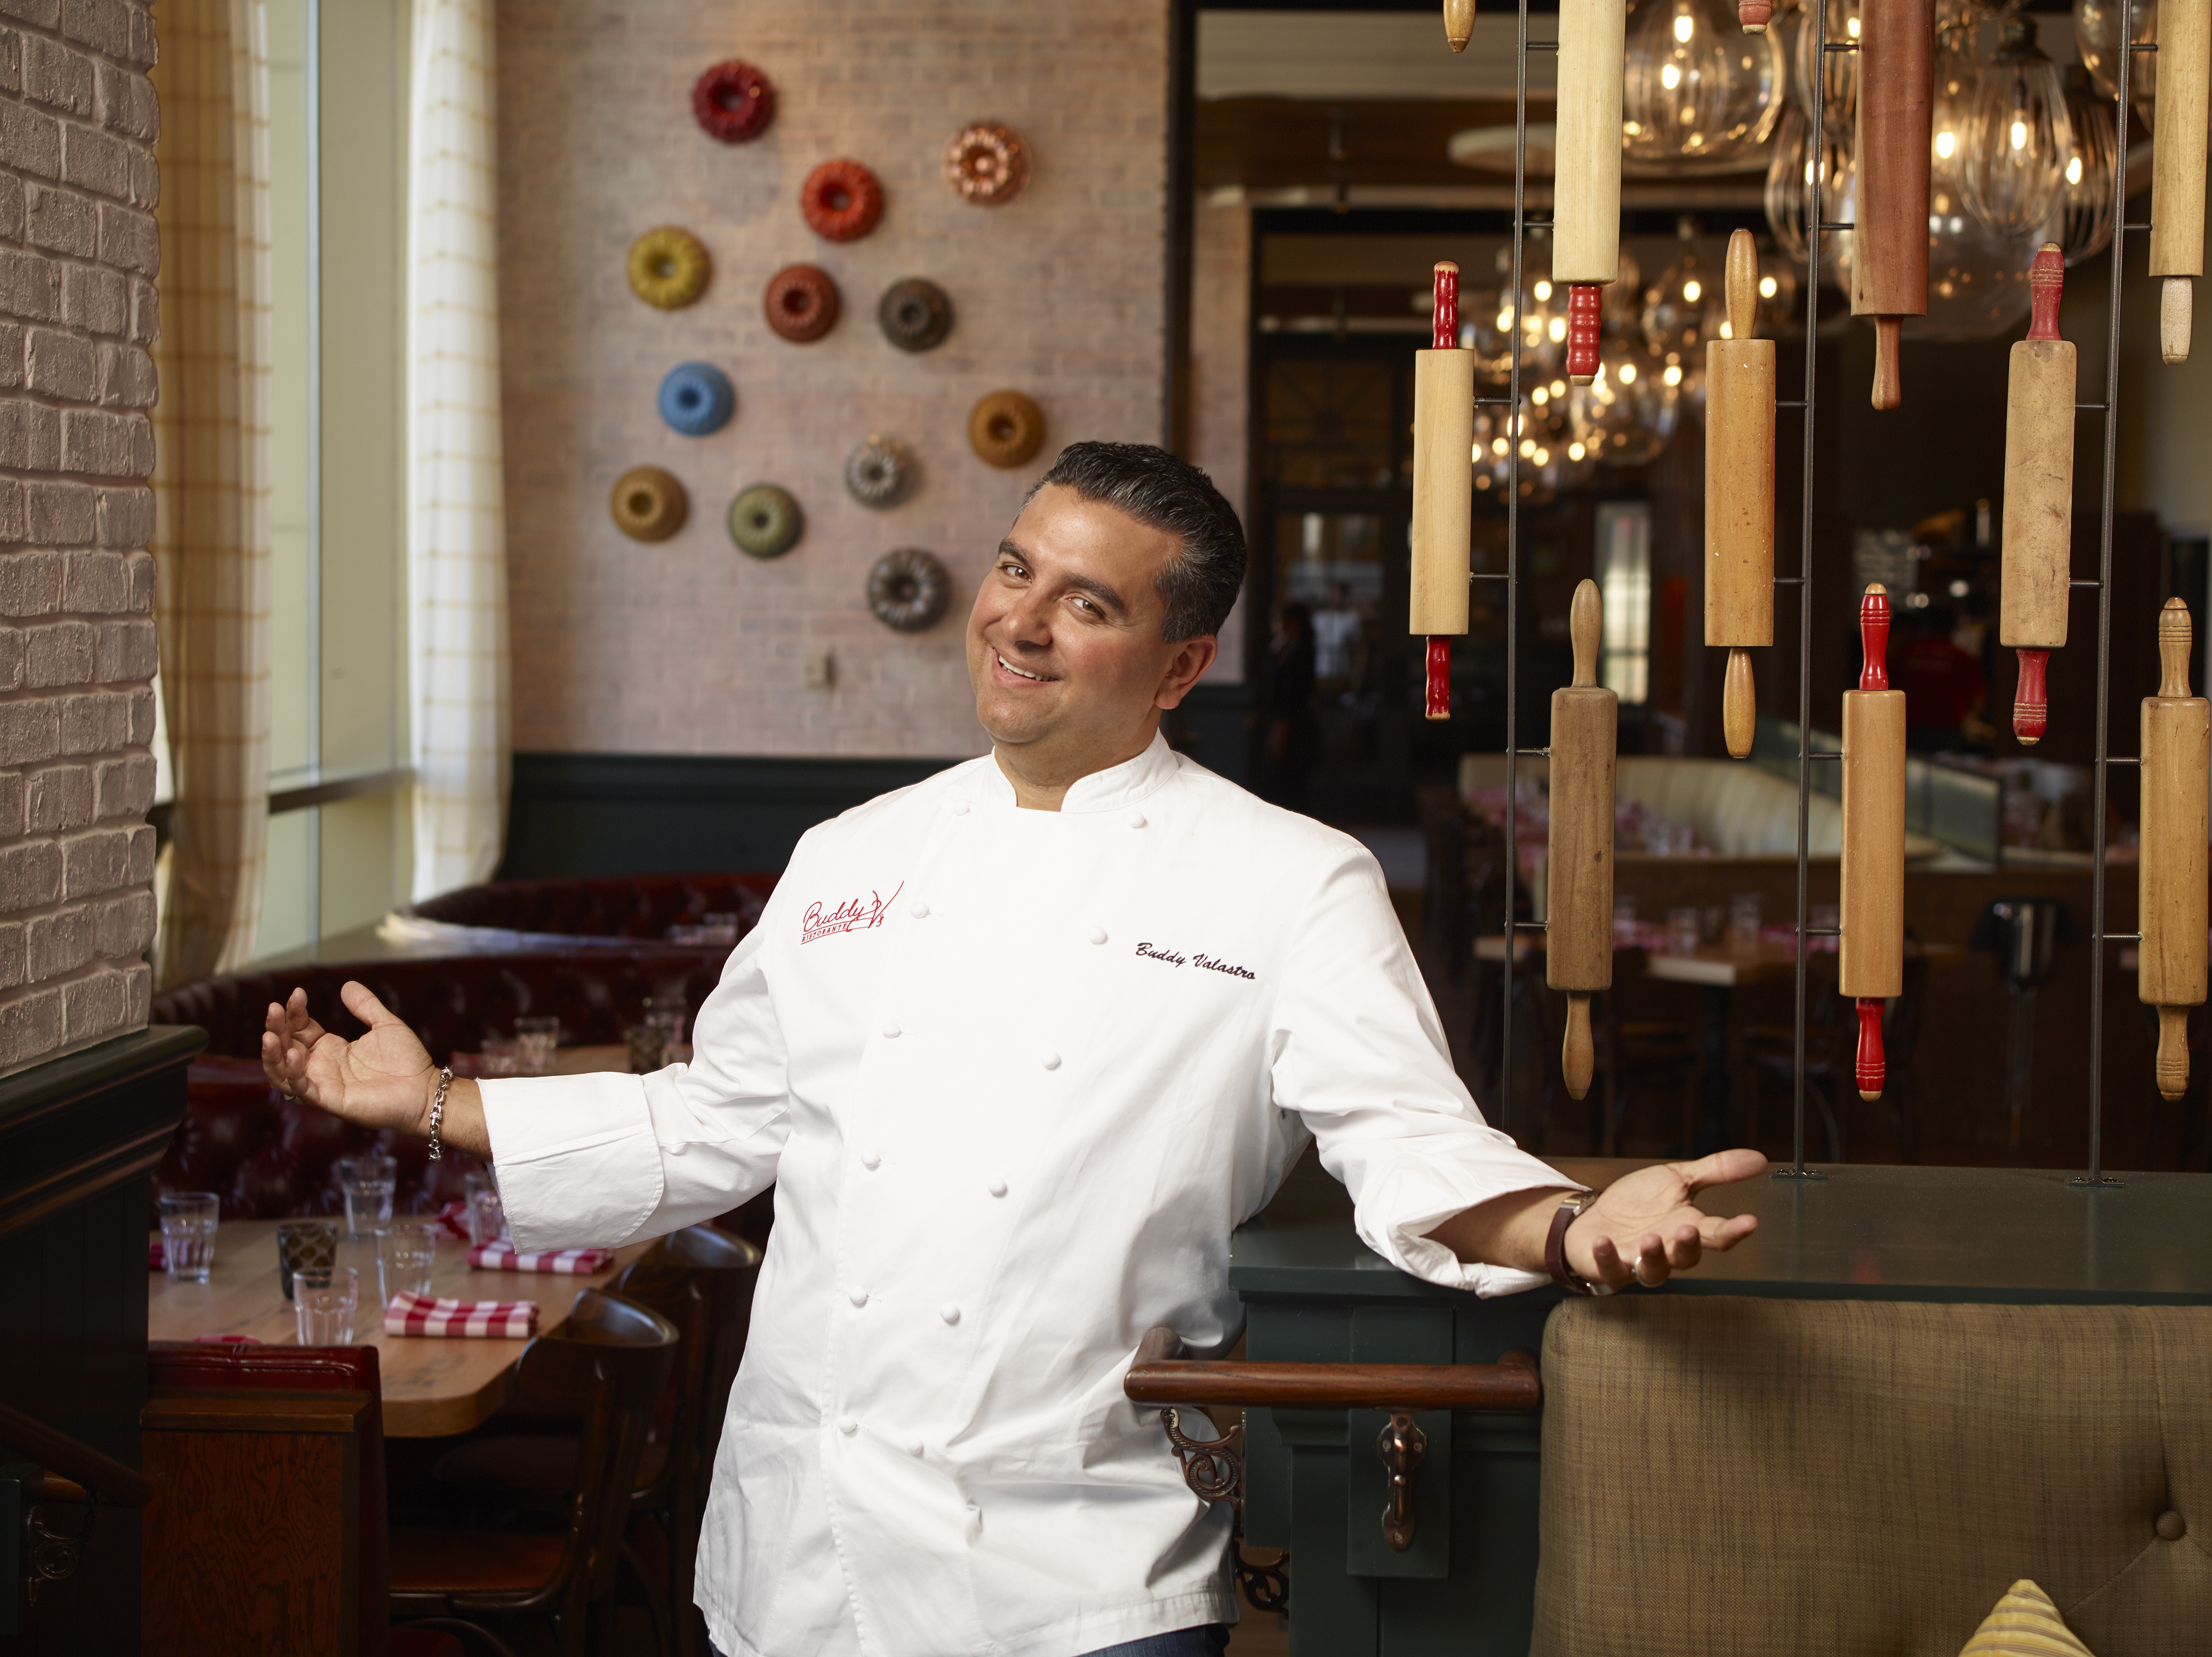 'Cake Boss' Buddy Valastro's Pizzacake Is Back on Track